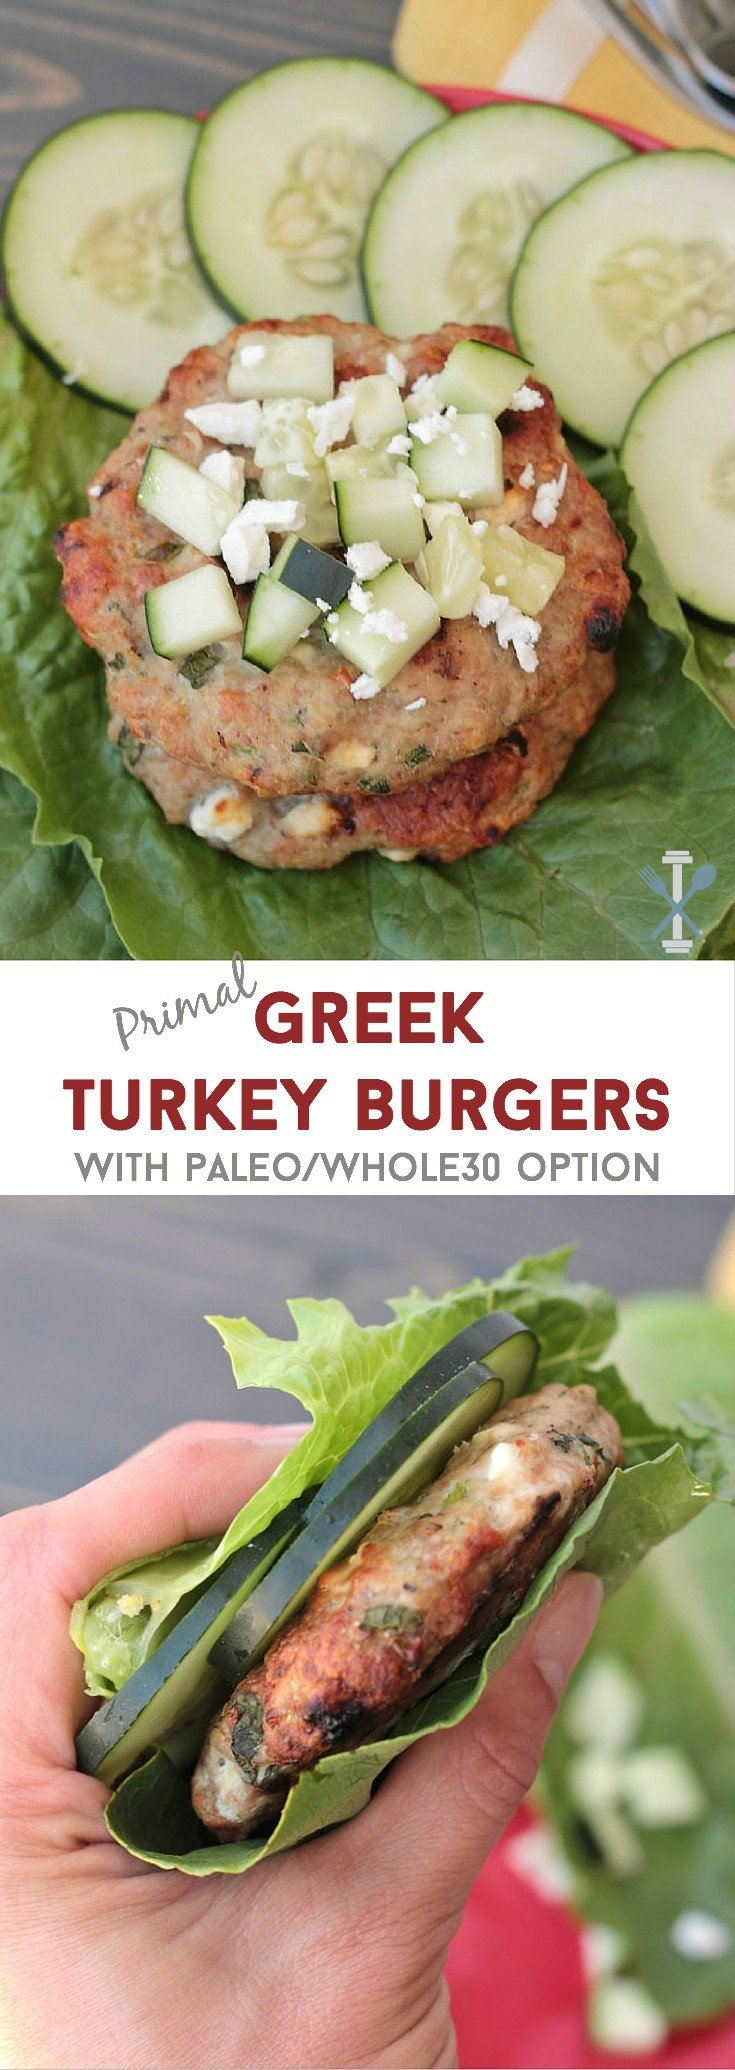 These primal Greek turkey burgers are the perfect lean burger - packed with fresh flavors like mint, feta, and oregano, these are sure to please (even beef-loving-husband's approve)! With a paleo and whole30 option!